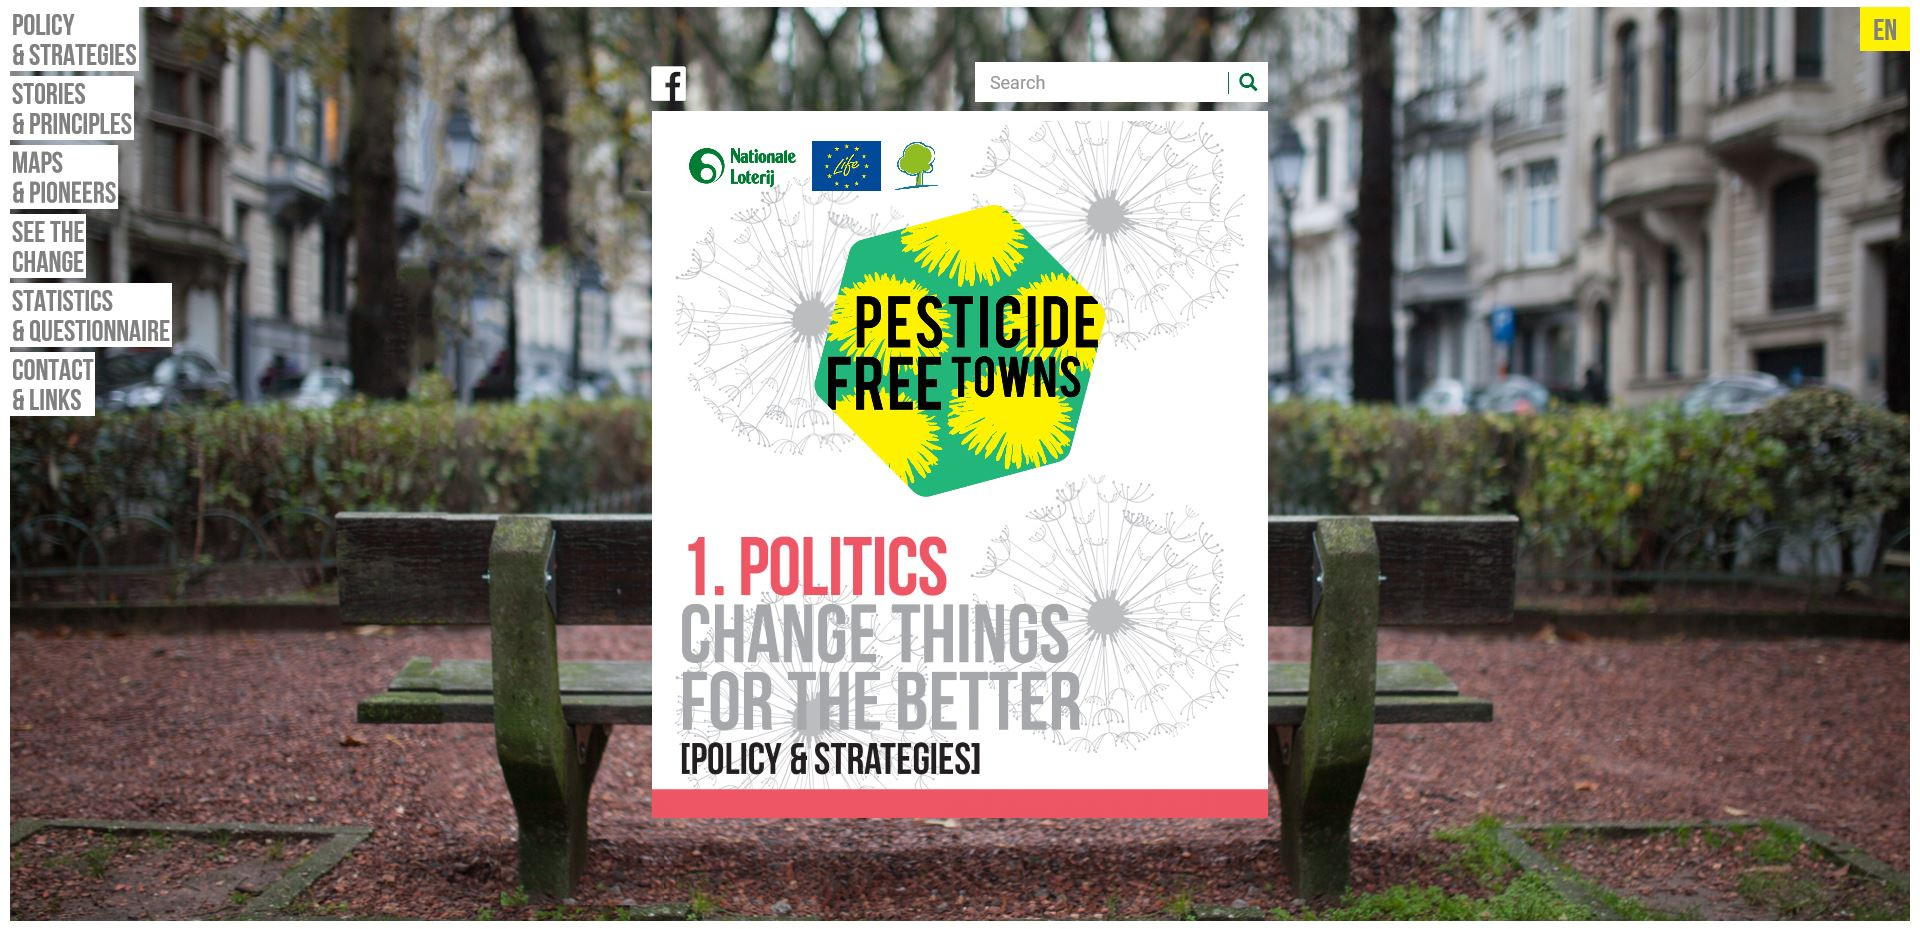 A Link to the Pesticide Free Towns Europe Website